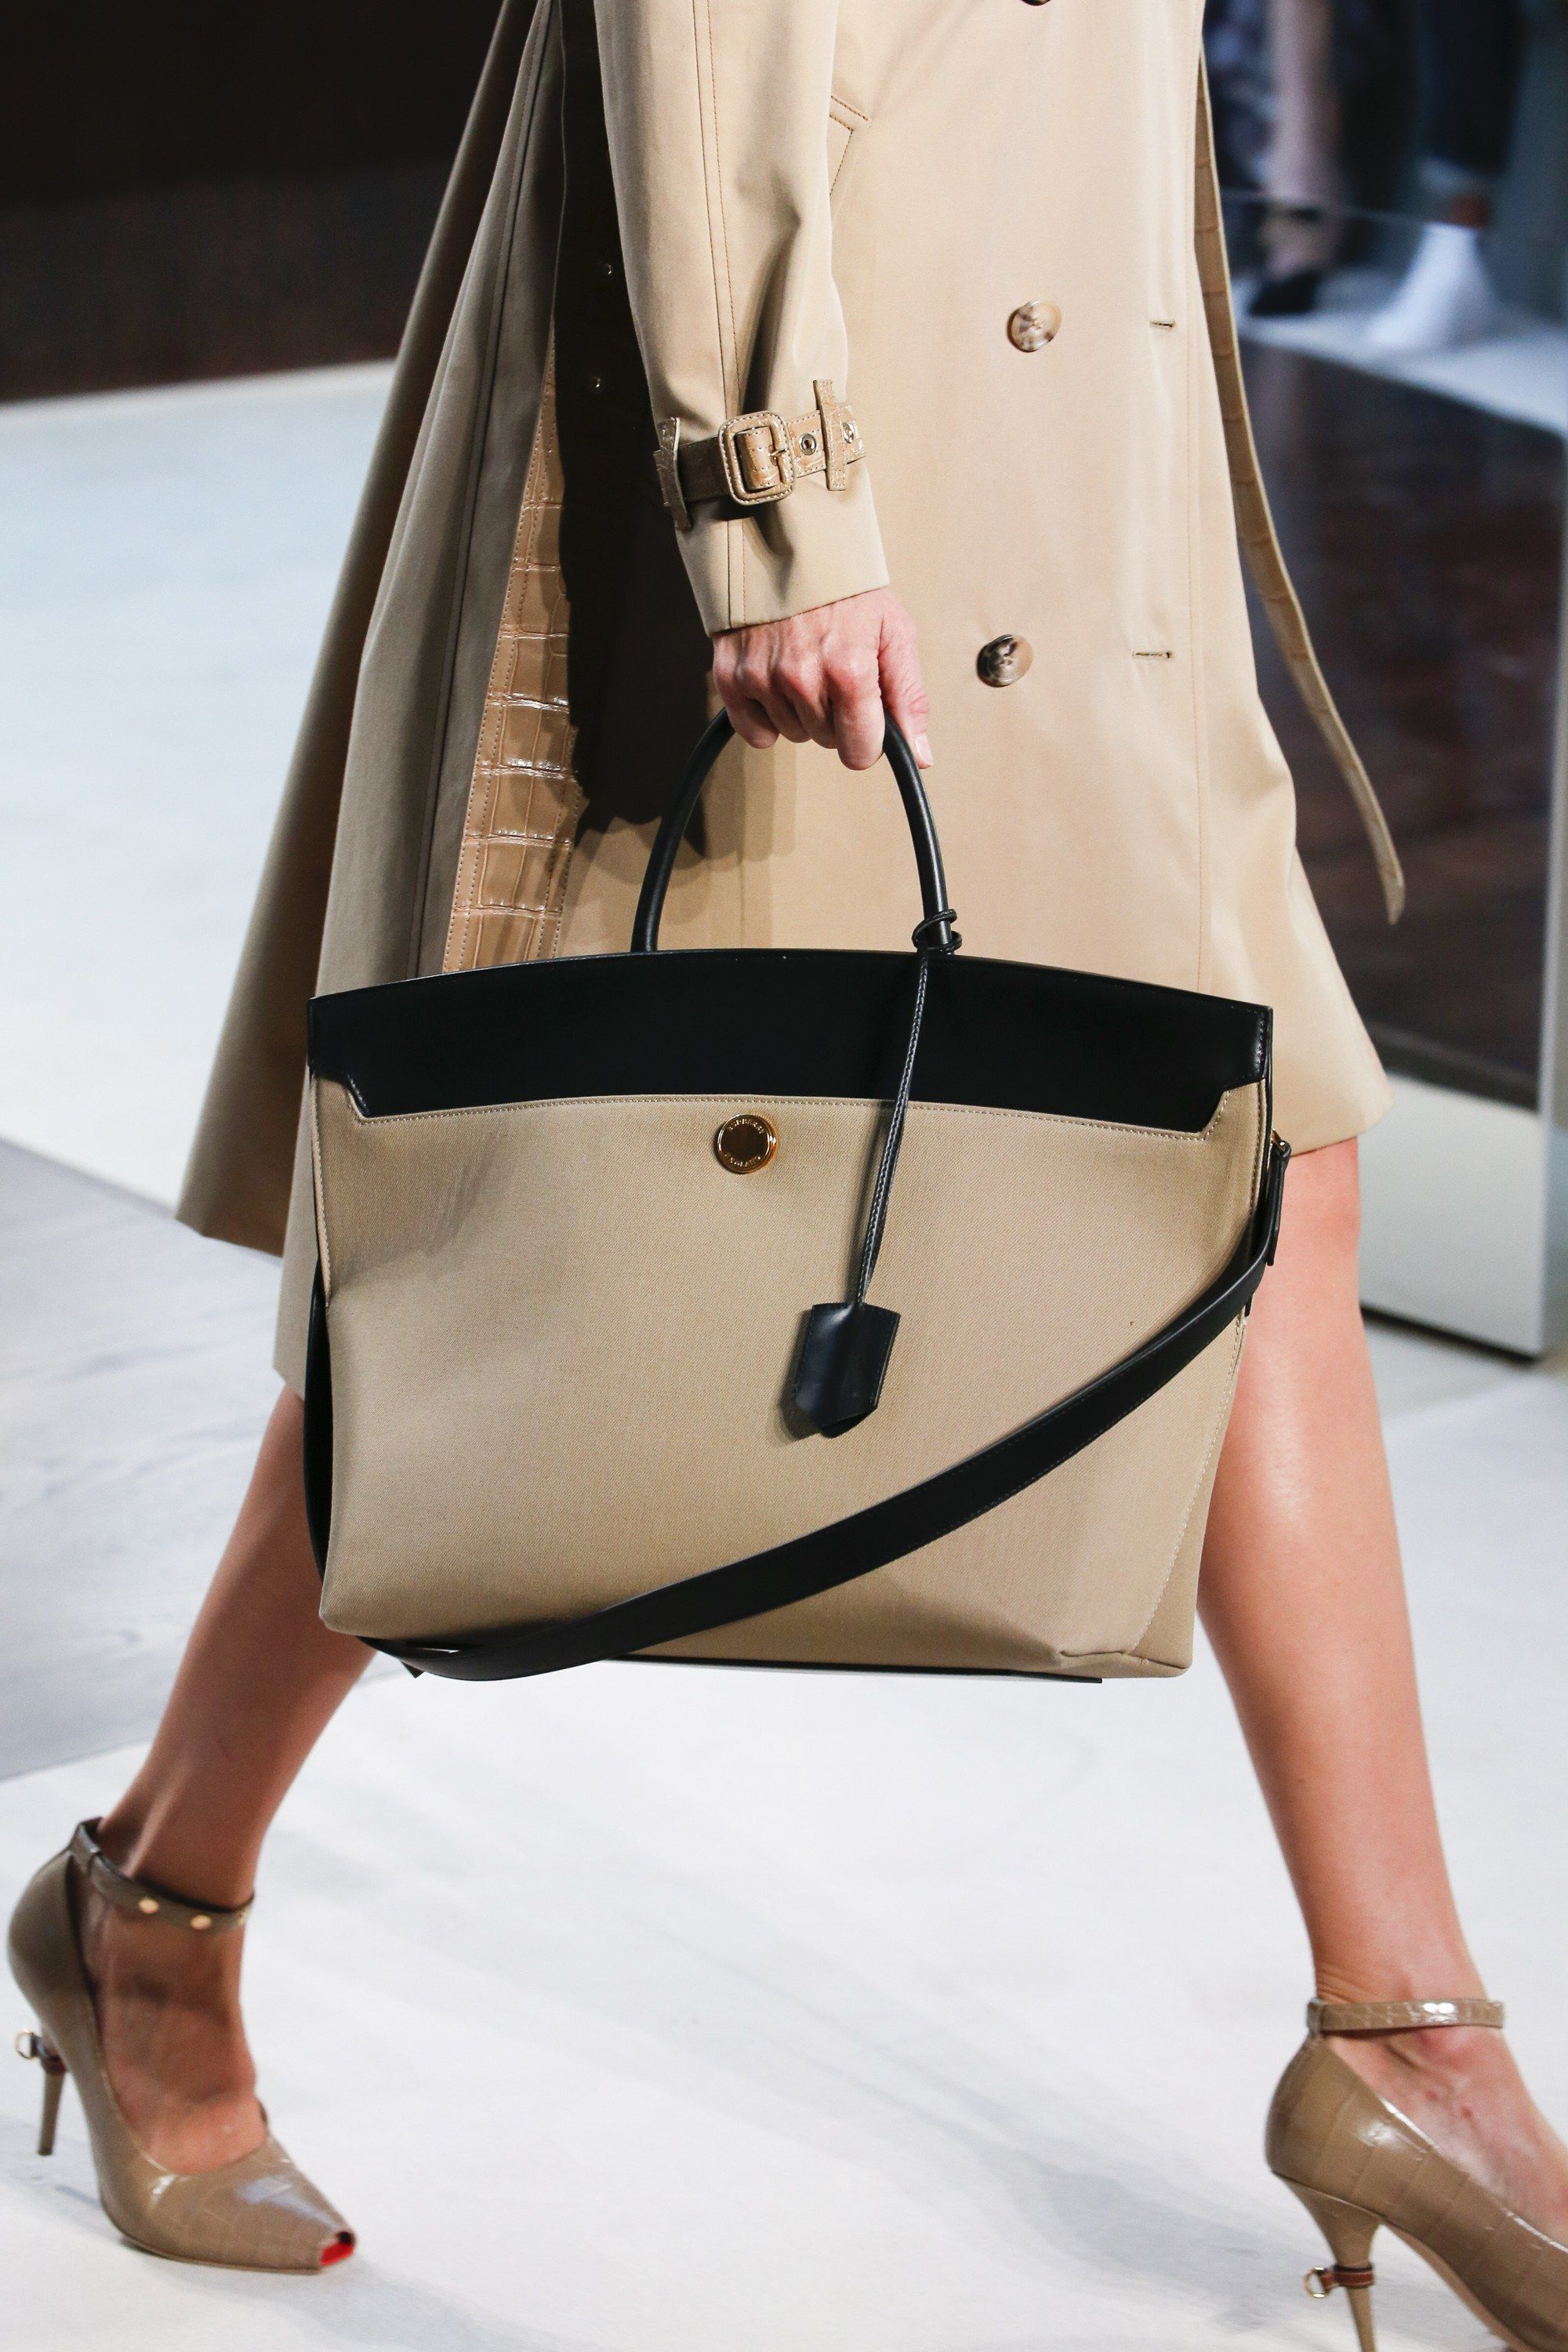 2019 year for girls- Prorsum burberry accessories spring summer collection